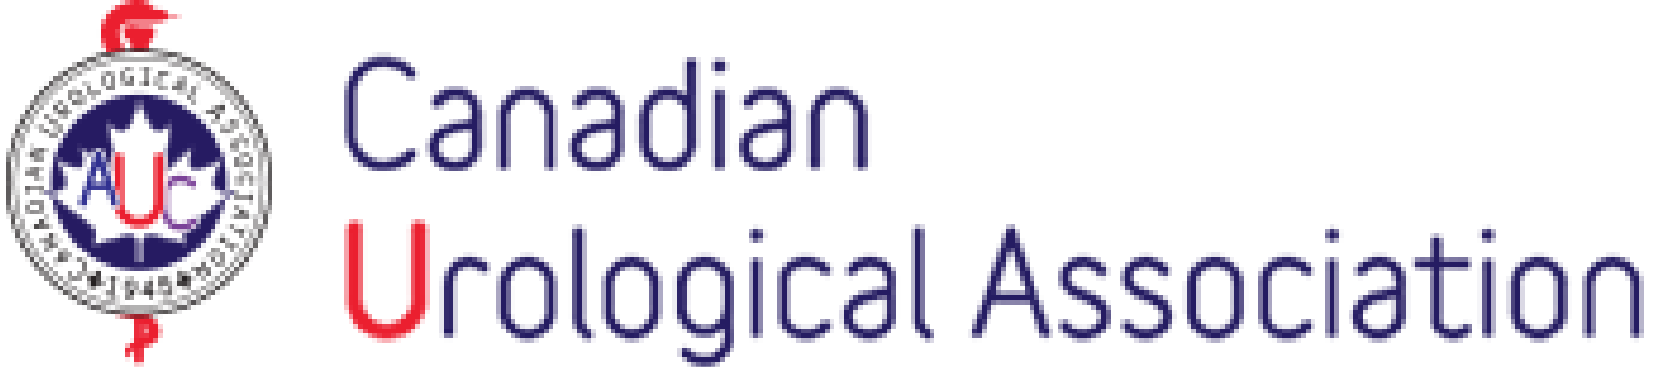 The logo for the Canadian Urological Association